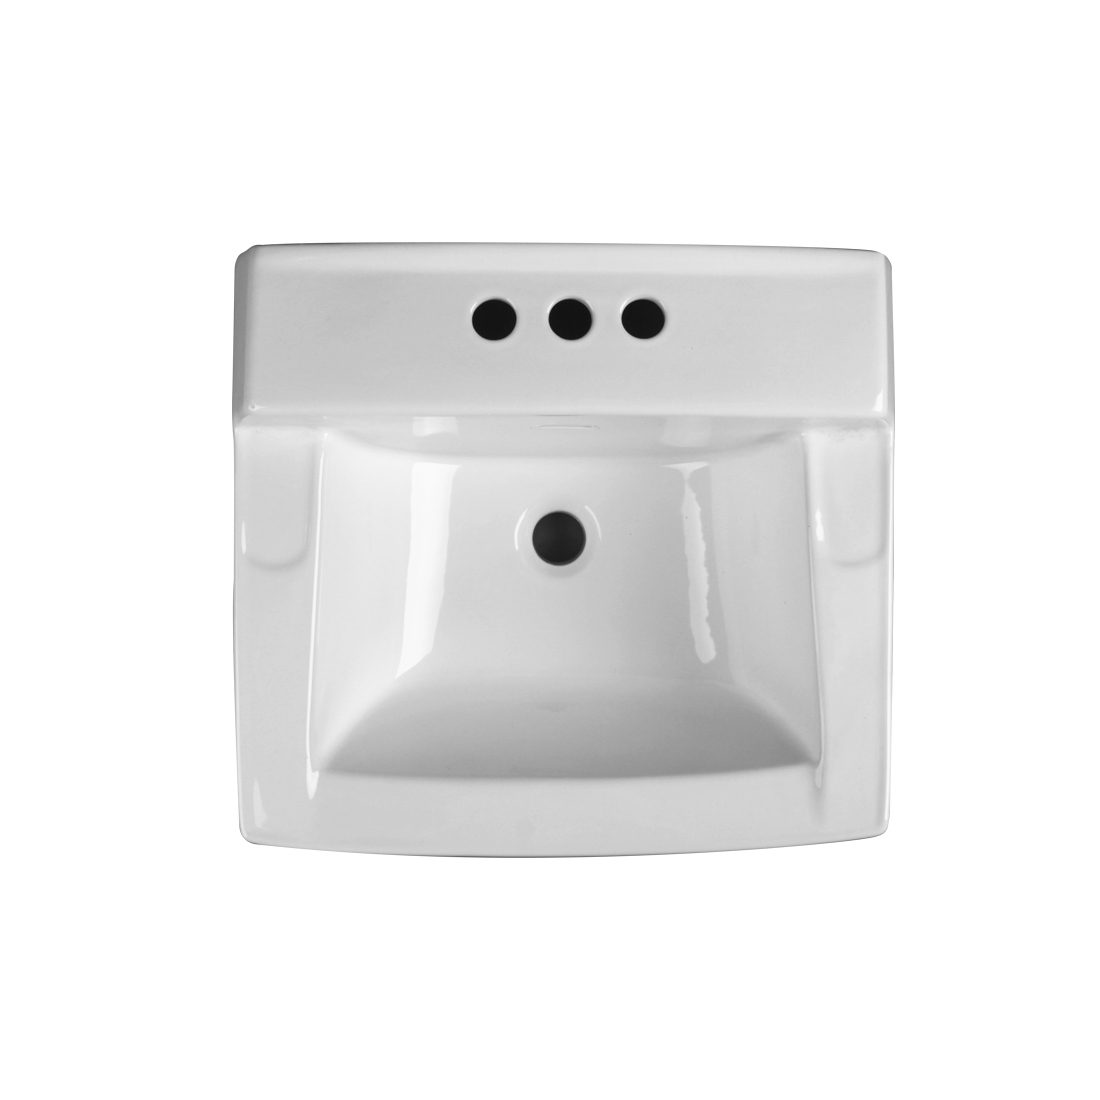 Camden Wall Hung Lavatory 3Hole 4inch White Up View